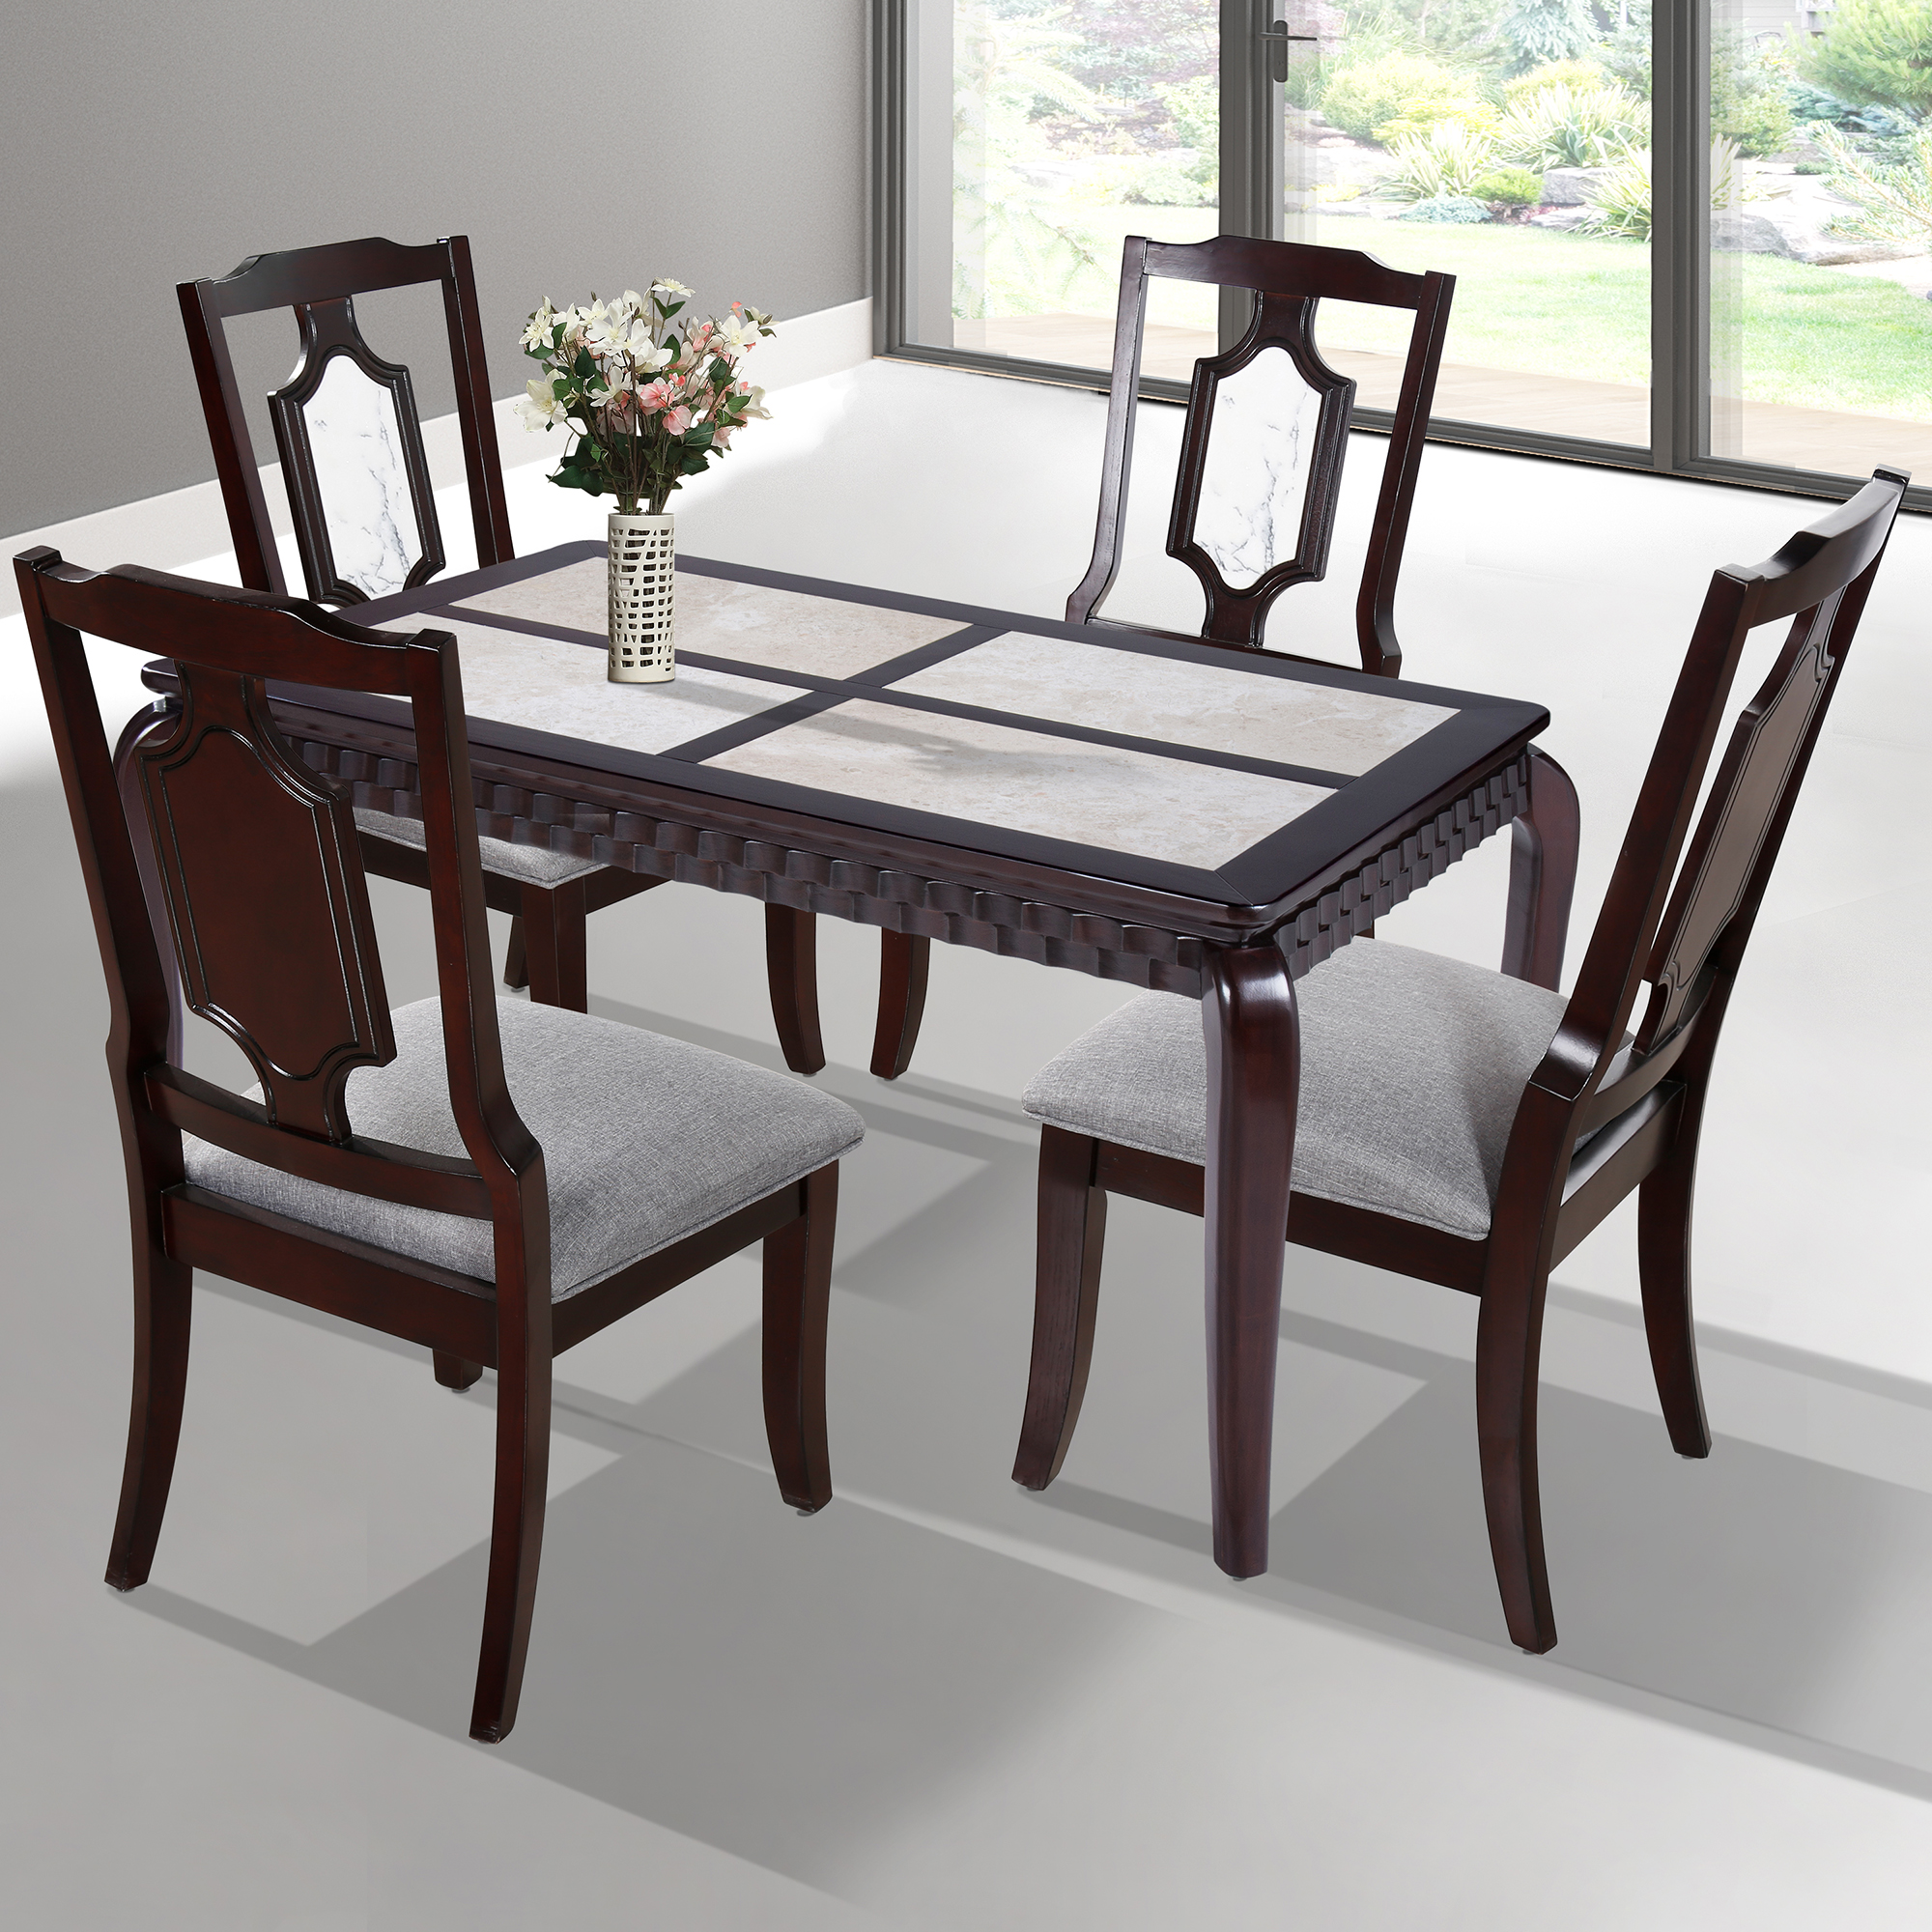 GranRest Marble Top Dining table - 52-inch, Wood frame